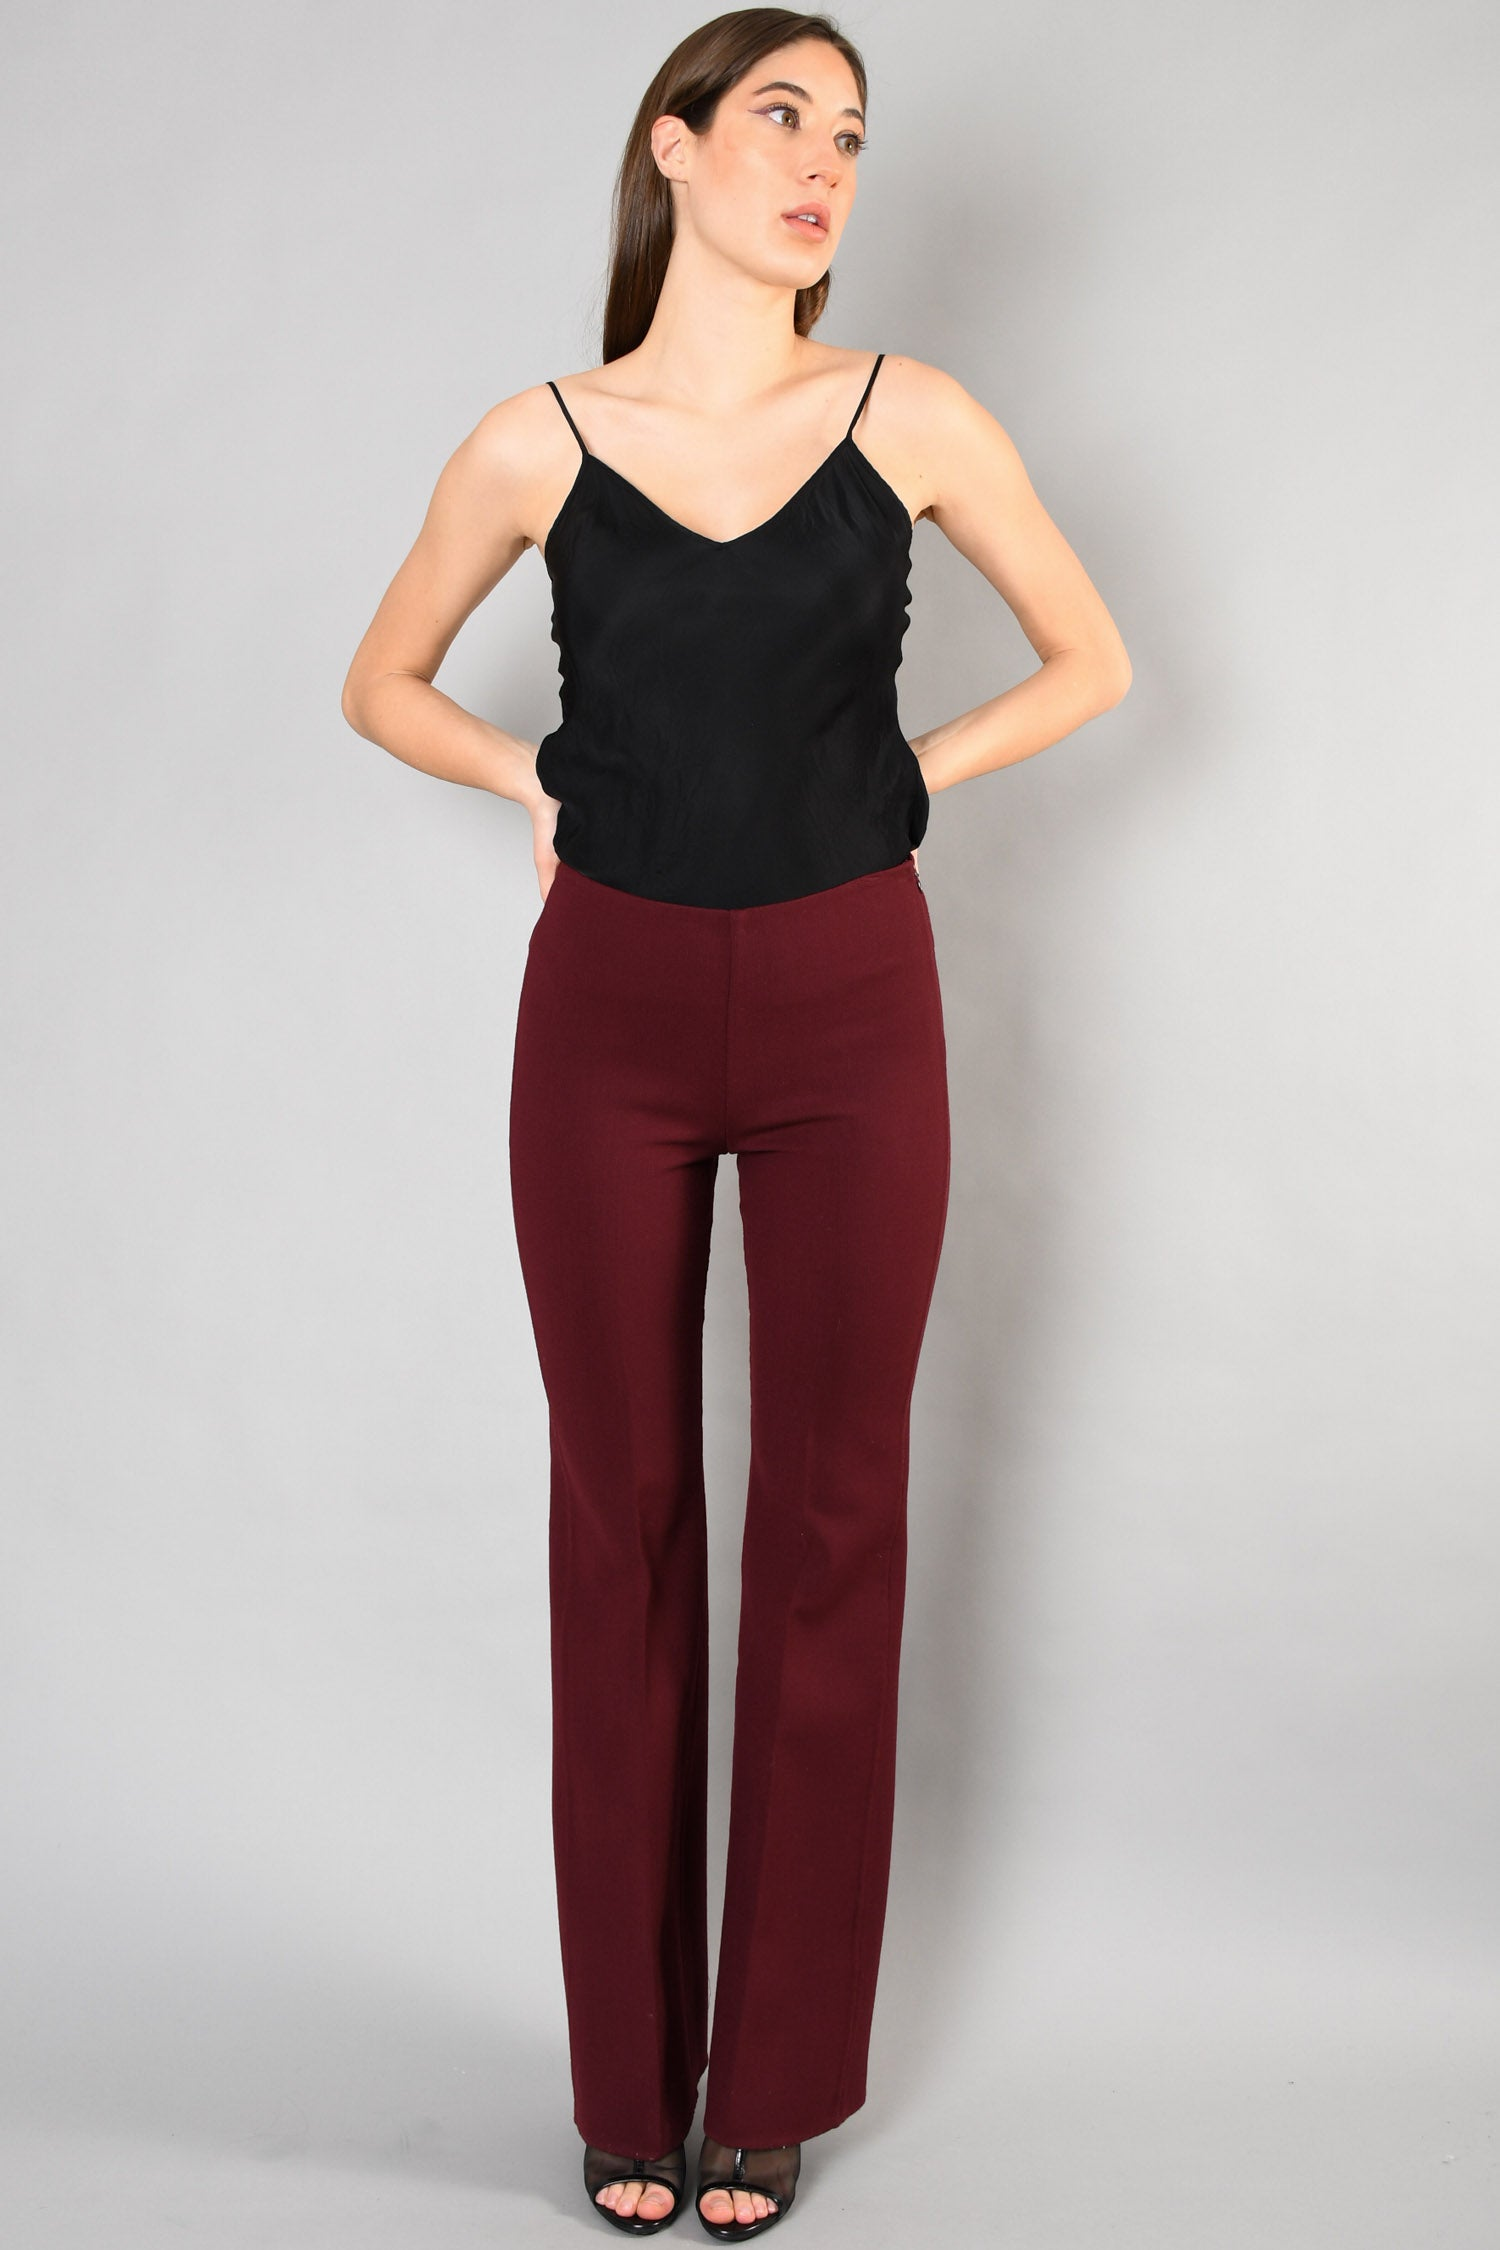 Theory Burgundy Wide-Leg Pants Size 4